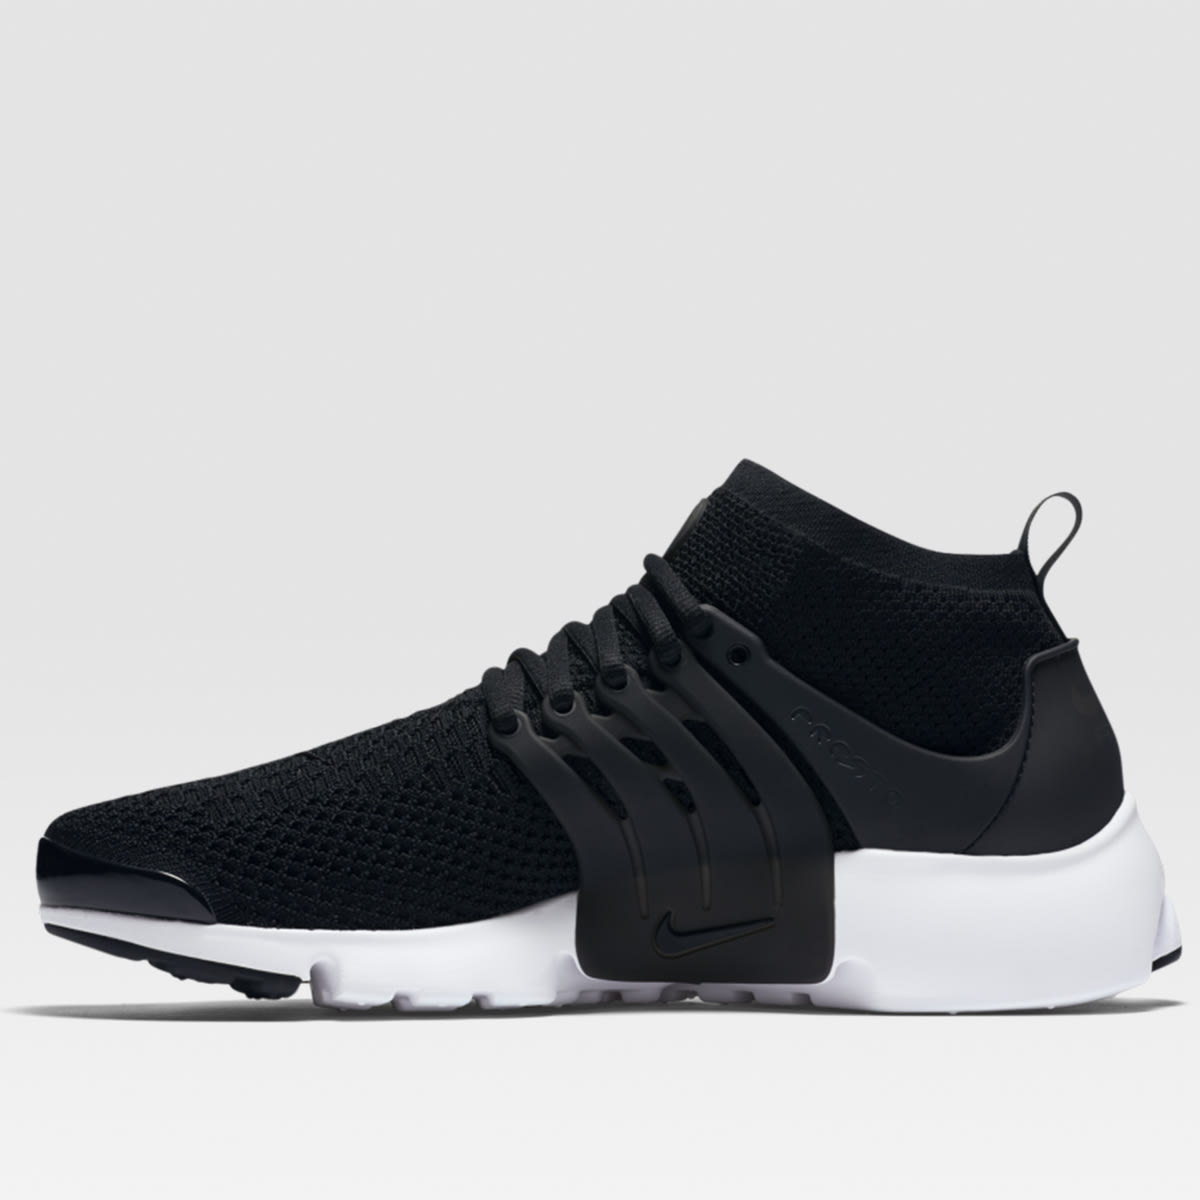 10d84ff2a077 Nike Air Presto Ultra Flyknit Black